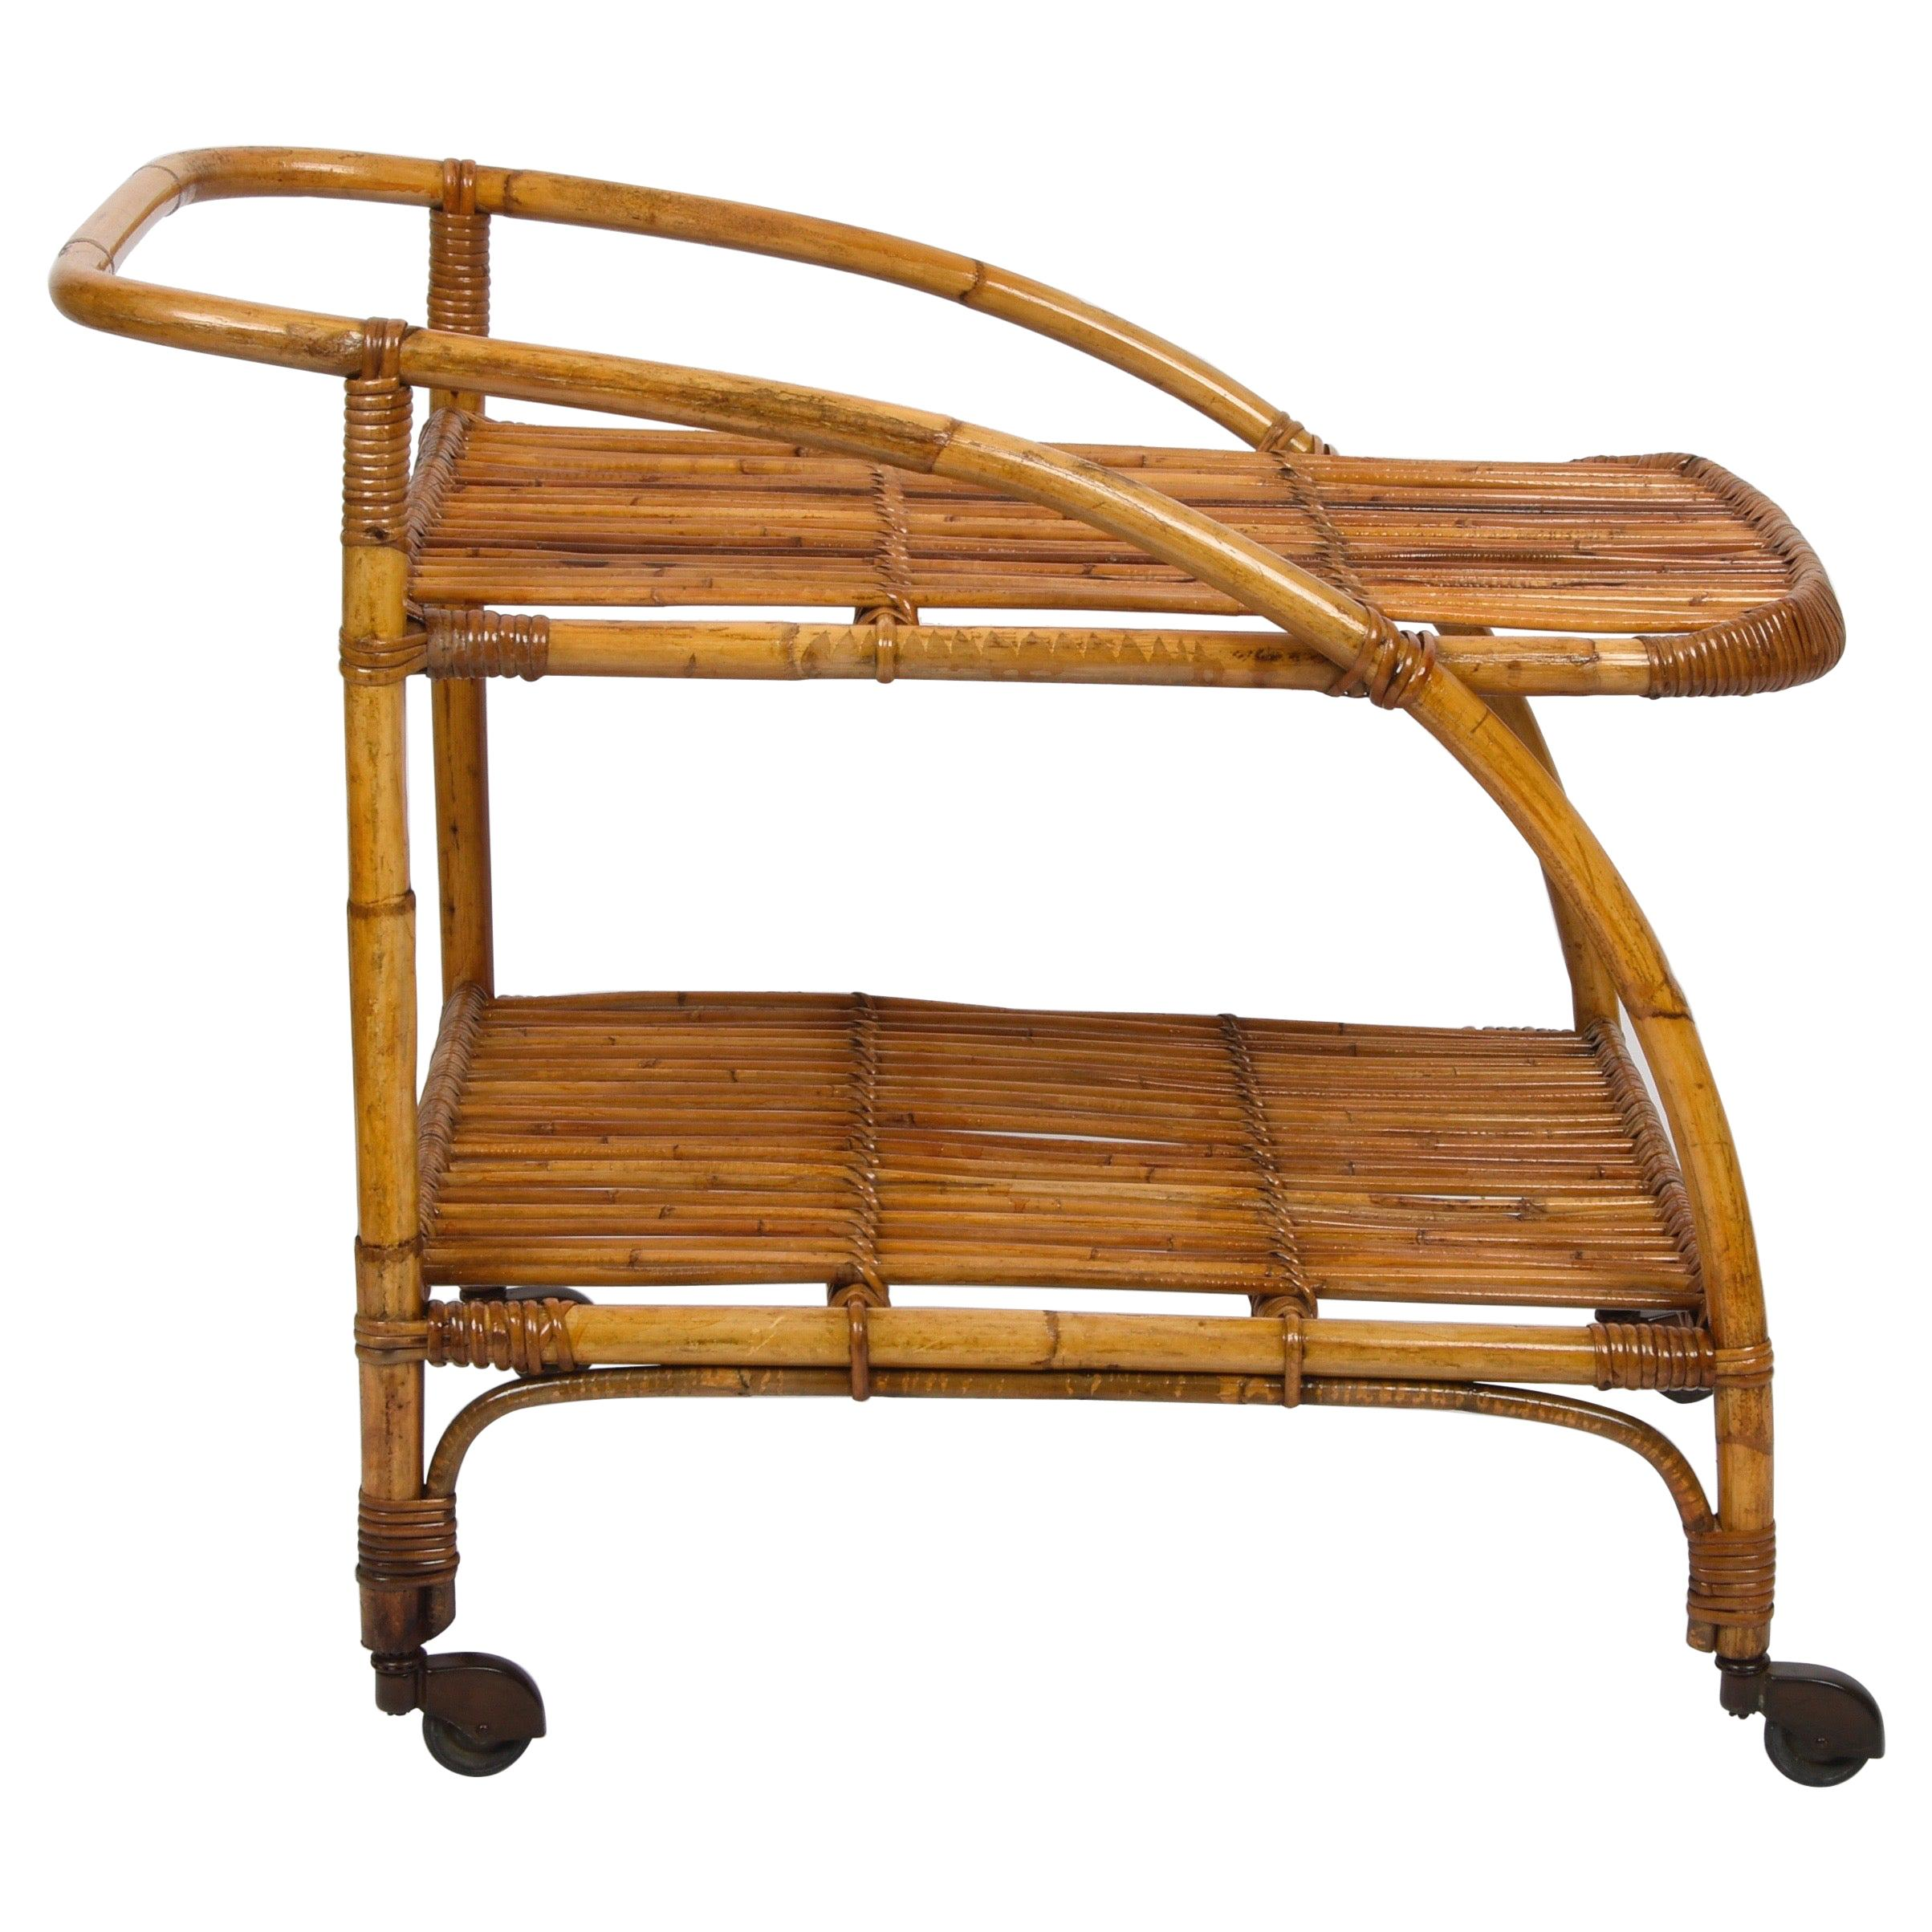 Midcentury Bamboo and Rattan Italian Serving Bar Cart Trolley with Wheels, 1950s